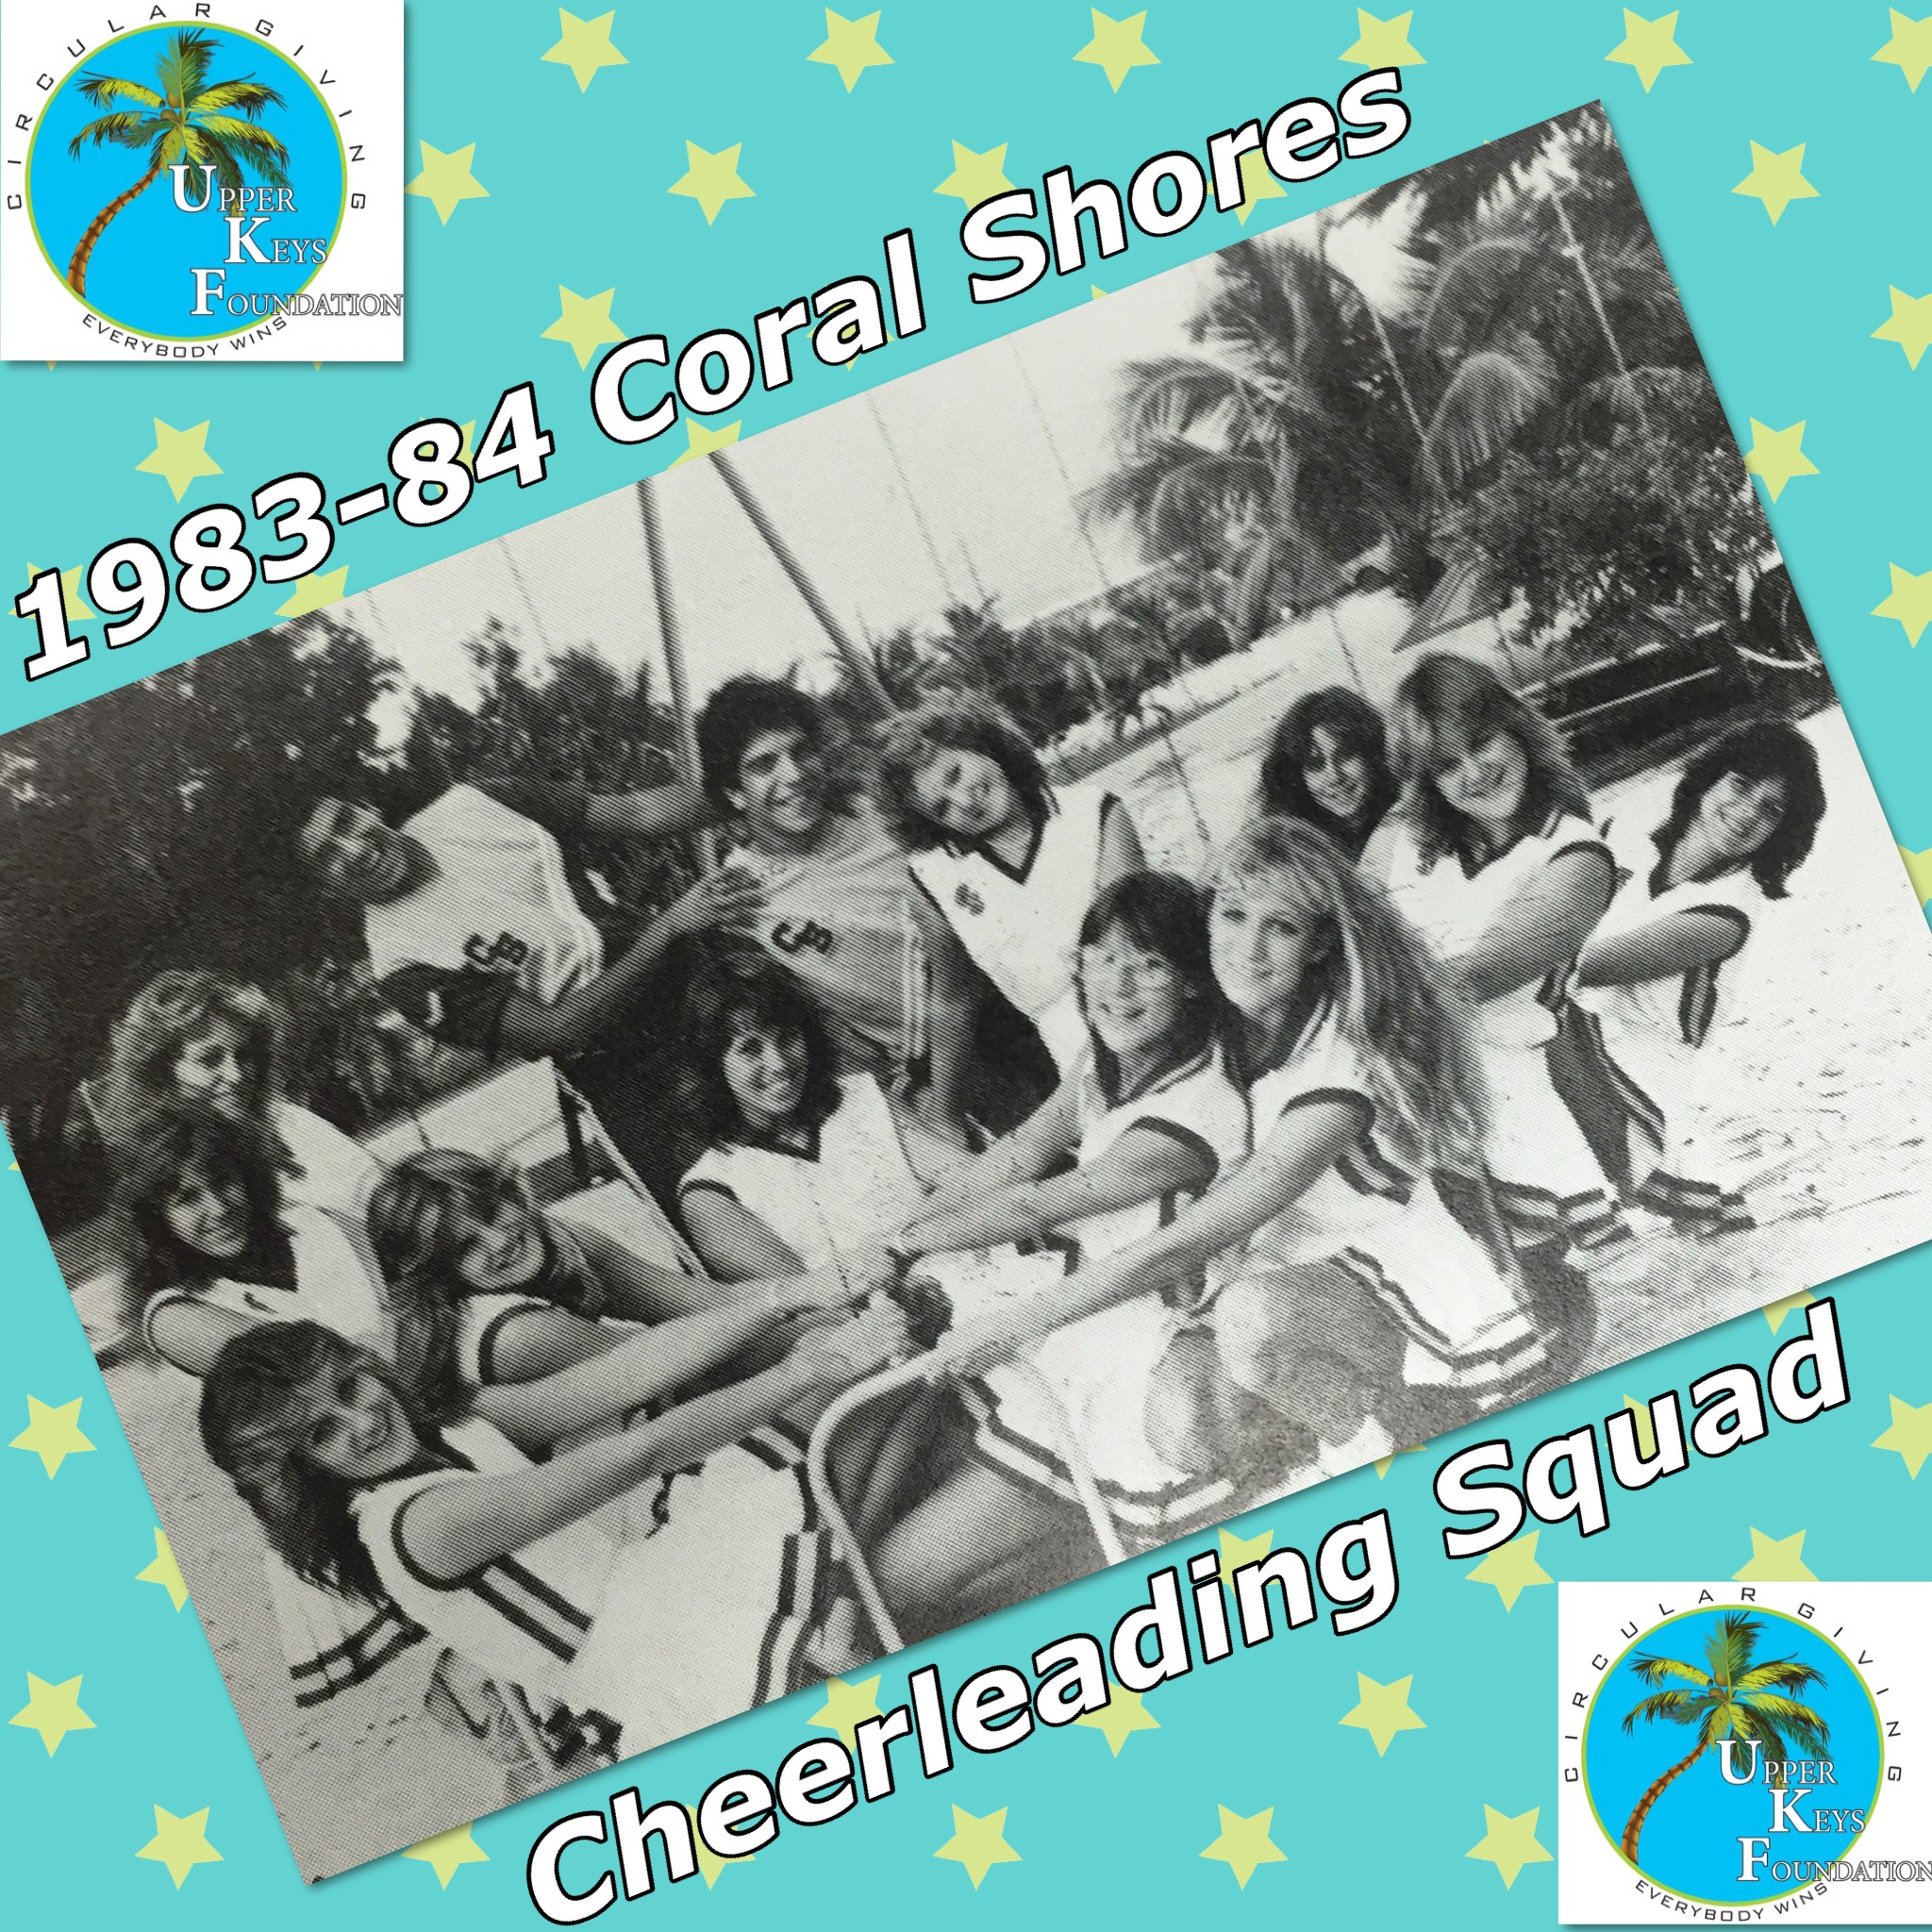 Throwback Thursday 4-1-2021 Class of 1984 Cheerleading Squad